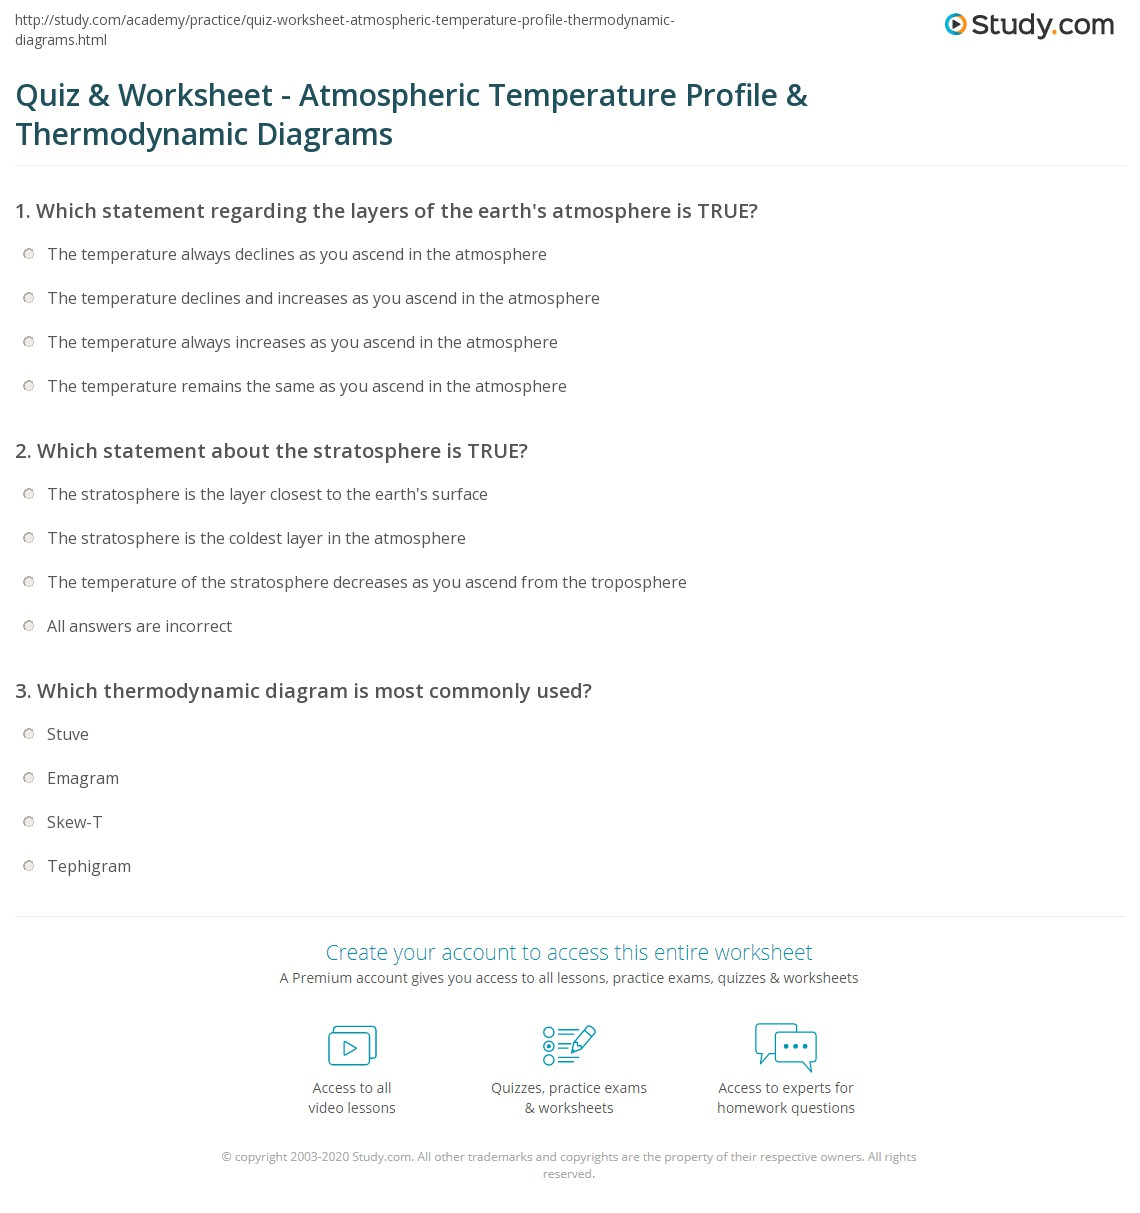 Quiz Worksheet Atmospheric Temperature Profile Thermodynamic – Atmosphere Worksheet